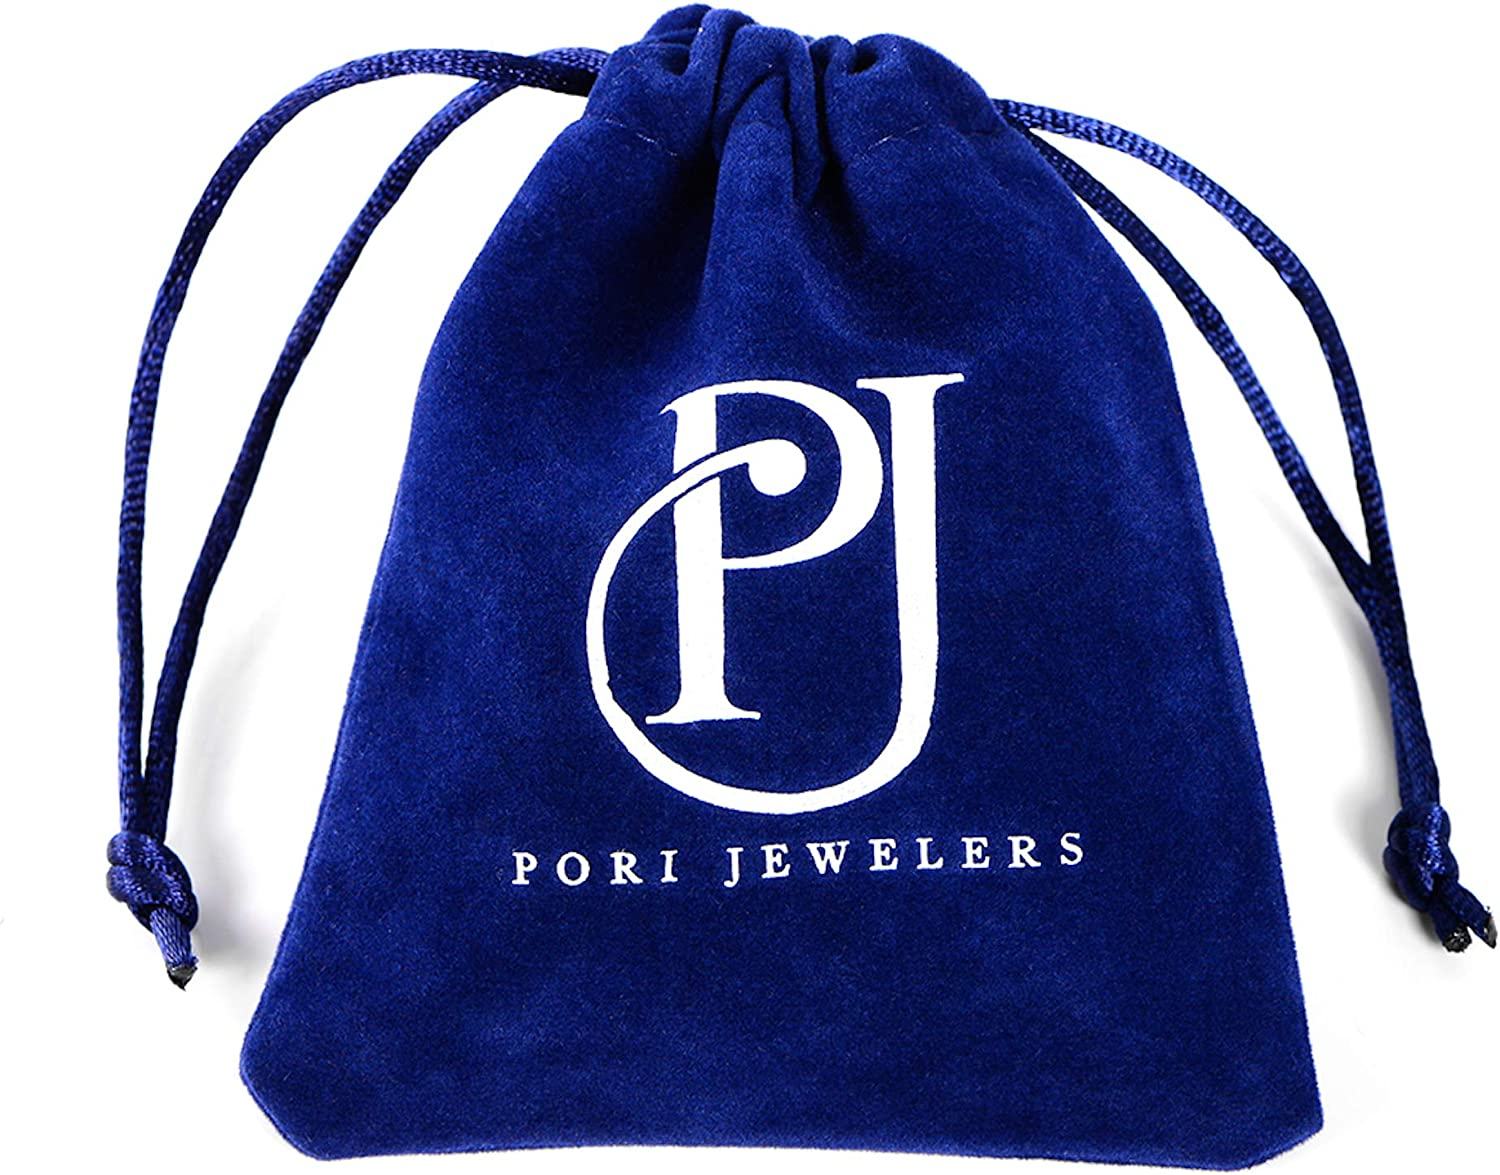 18 Pori Jewelers 14K Yellow Gold Puffed Star Pendant in 14K Gold Cable Chain Necklace